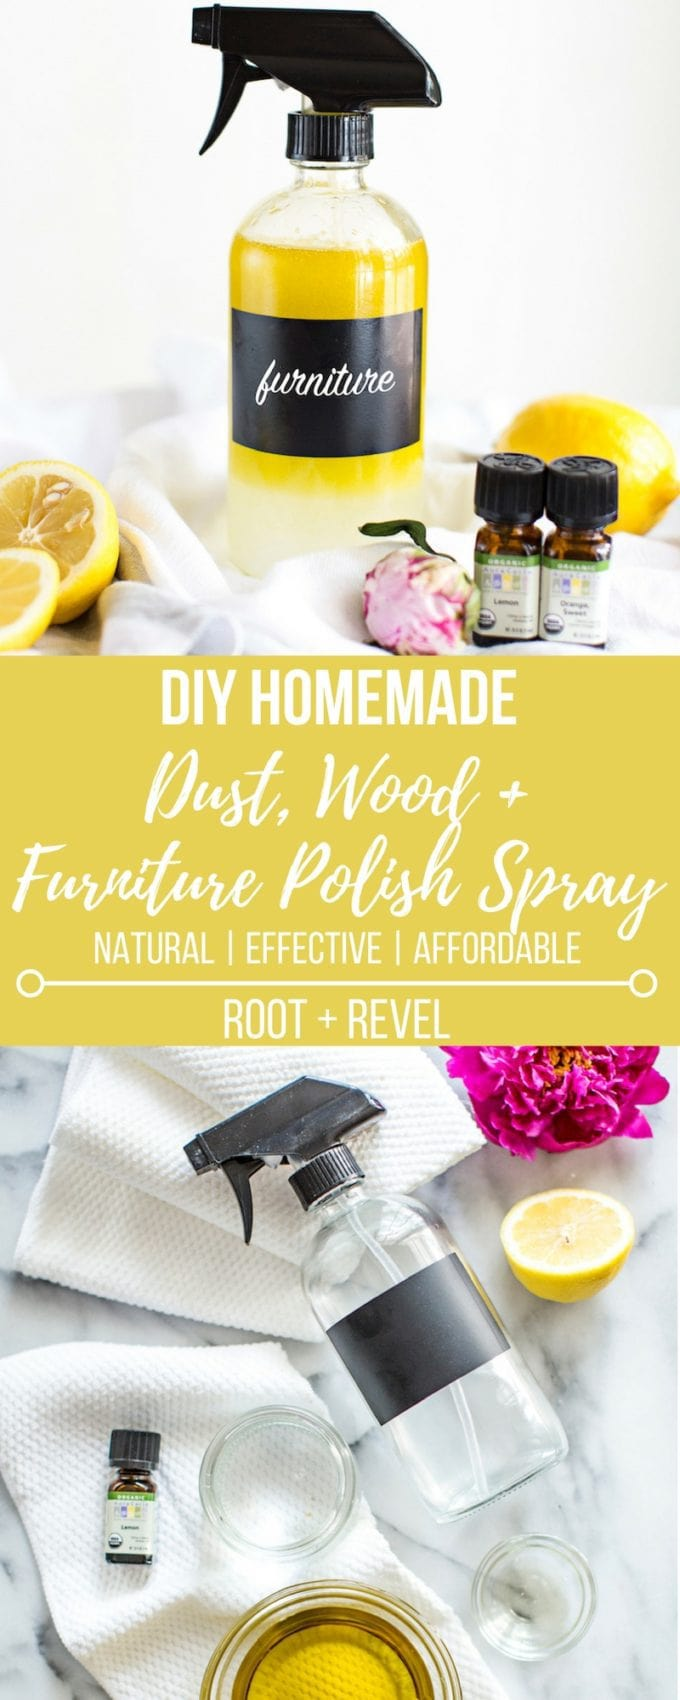 This DIY Homemade Dust, Wood + Furniture Polish Spray Is A Safe, Affordable  And